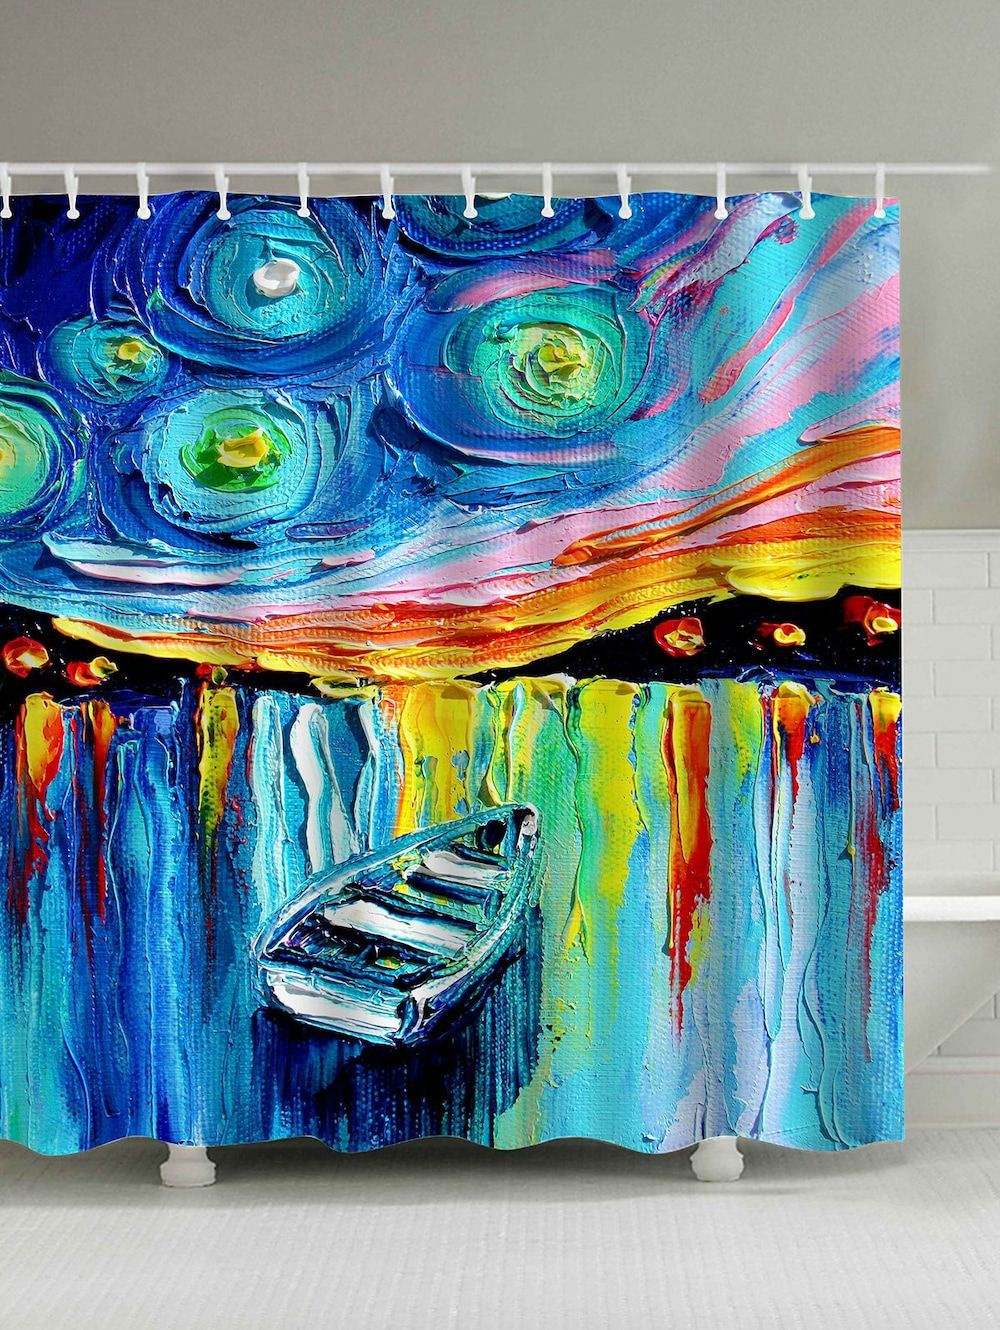 Waterproof Boat In Lake Oil Painting Shower Curtain Painting